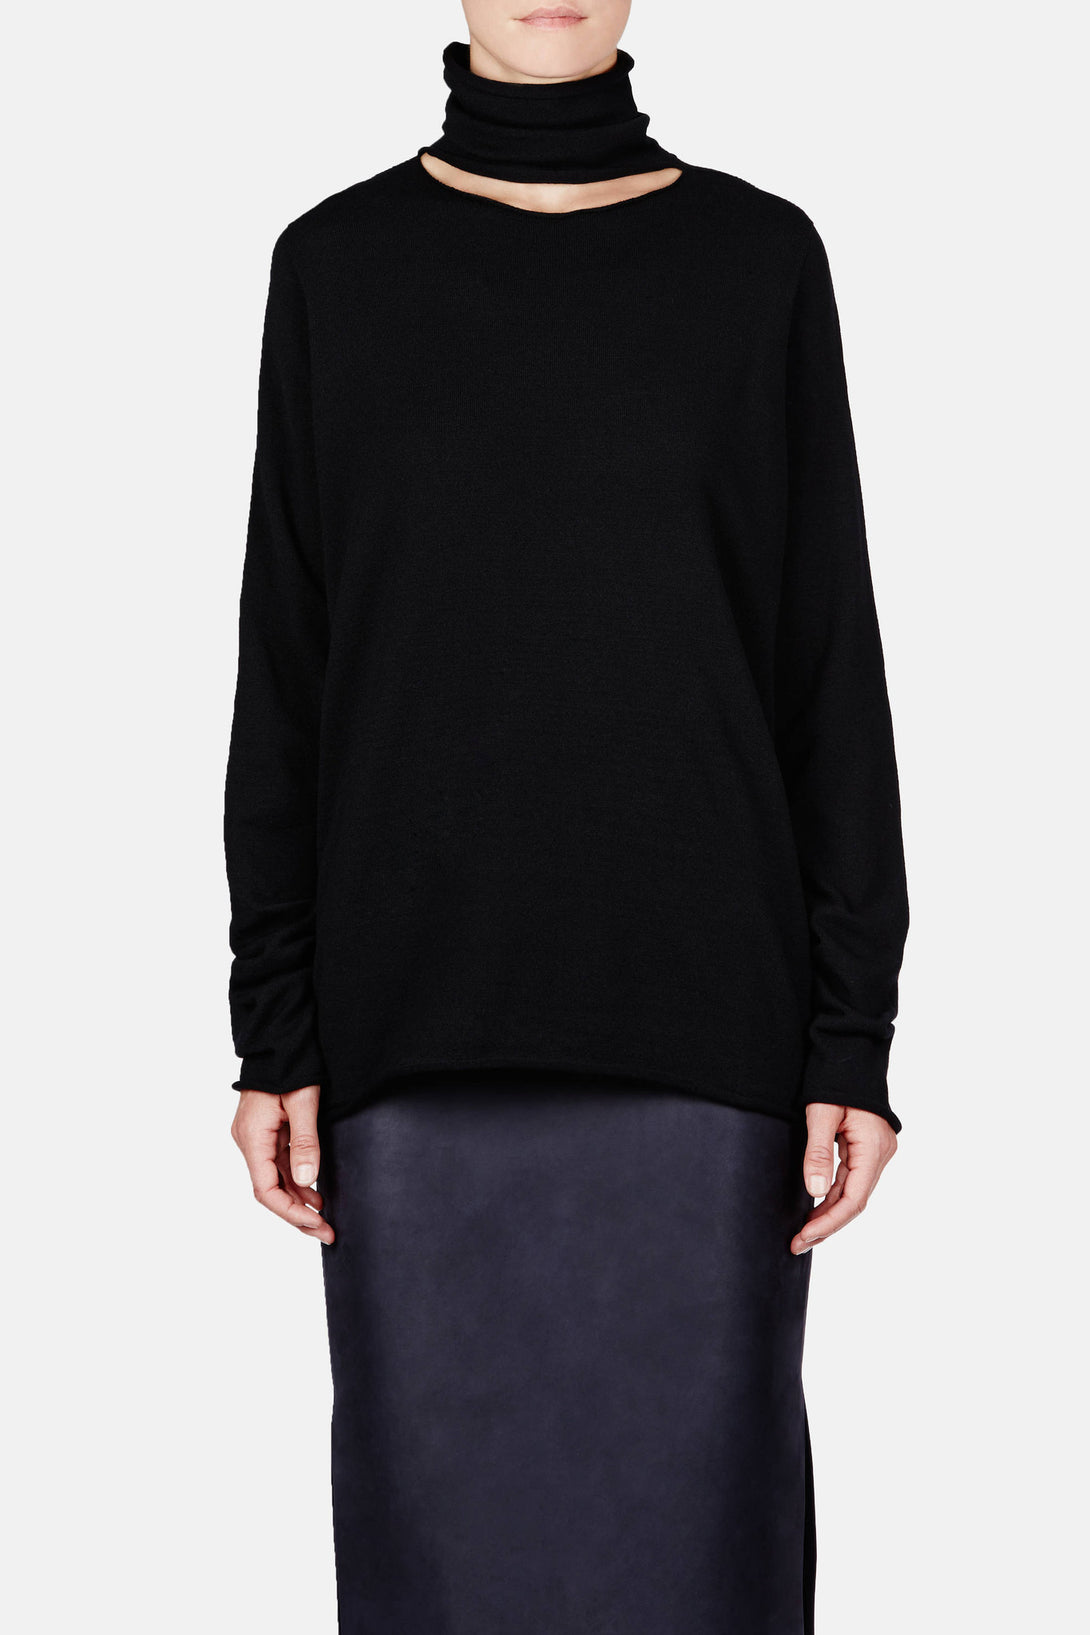 Sweater 02 Deconstructed Turtleneck - Black